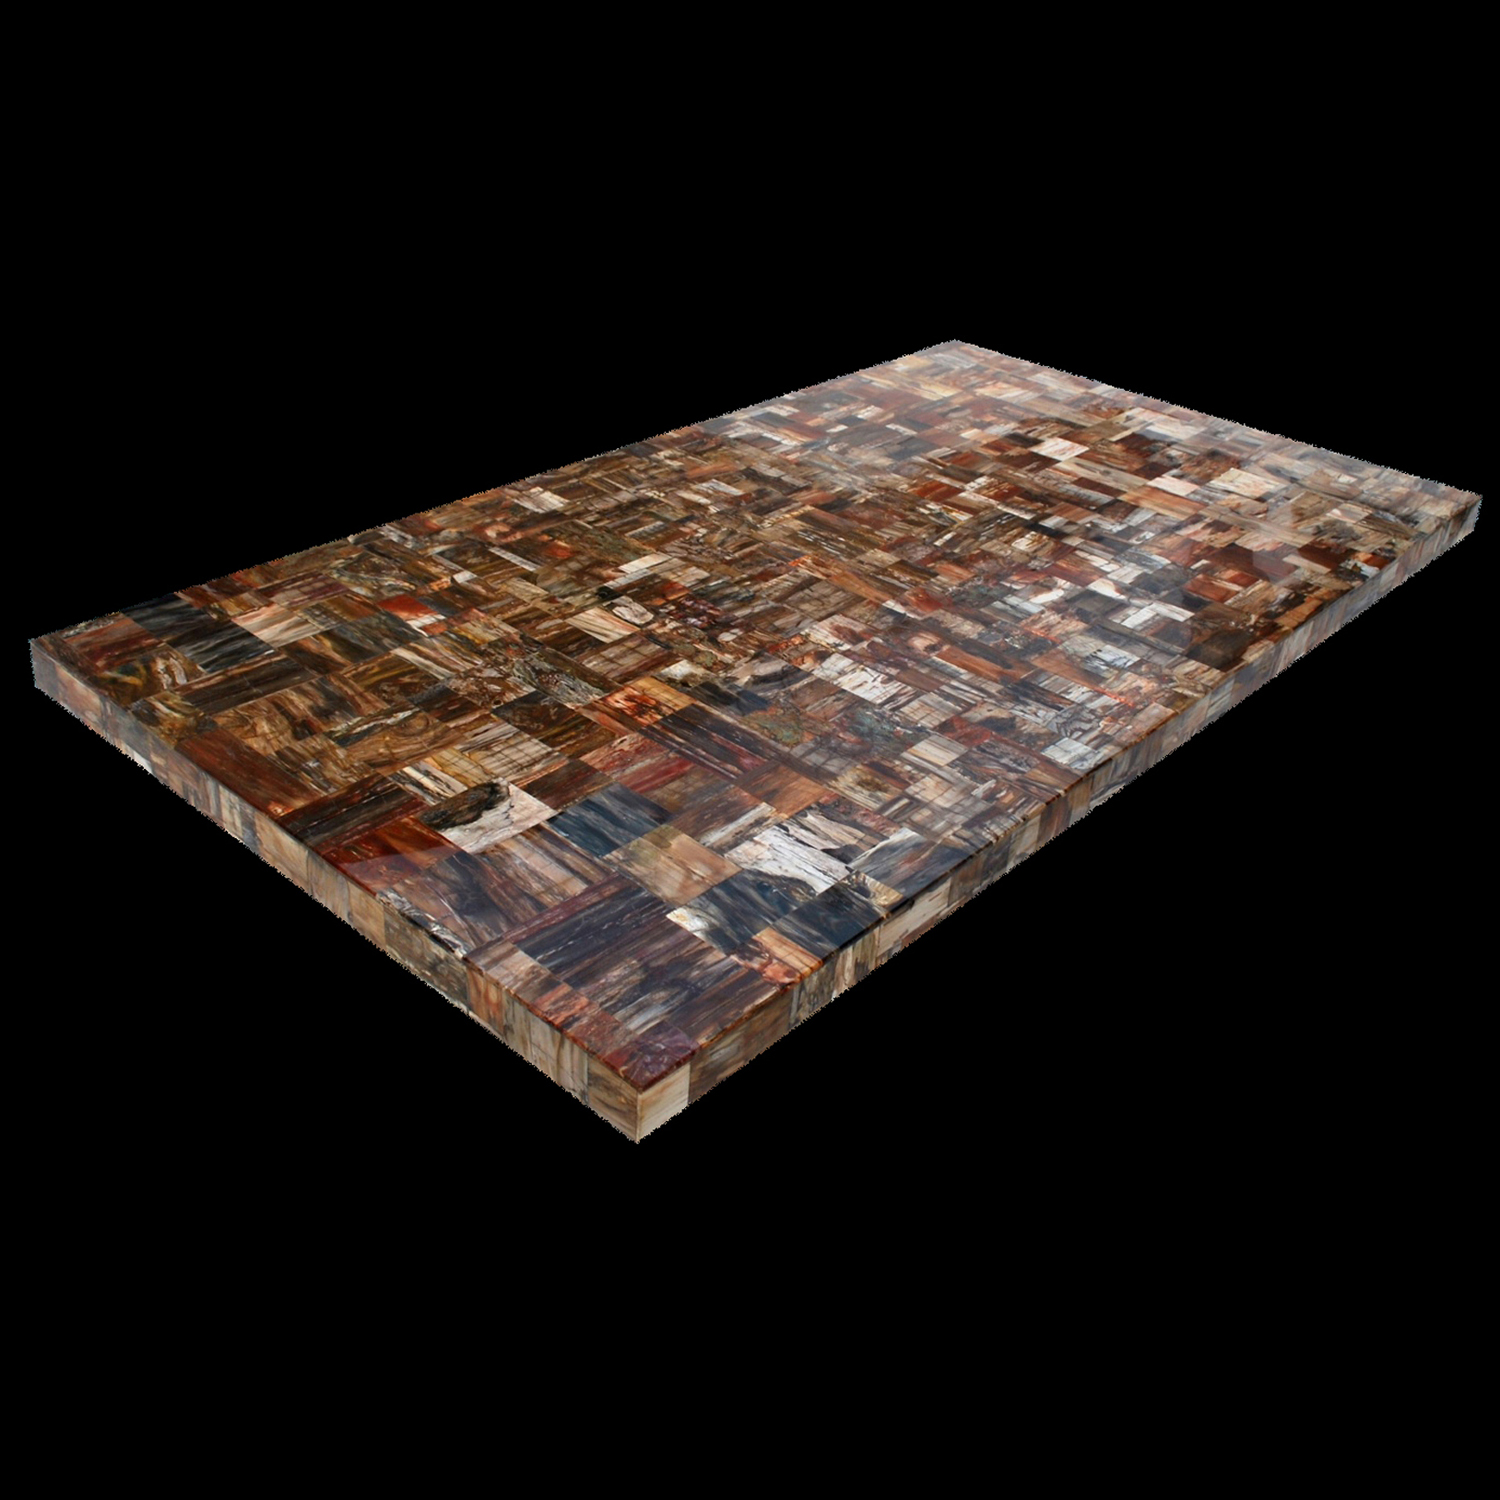 Genial Petrified Wood Retro Gemstone Tabletop, 4u0027 X 8u0027, 1 Piece. Click To Enlarge  · Petrified Wood Retro Gemstone Tabletop ...